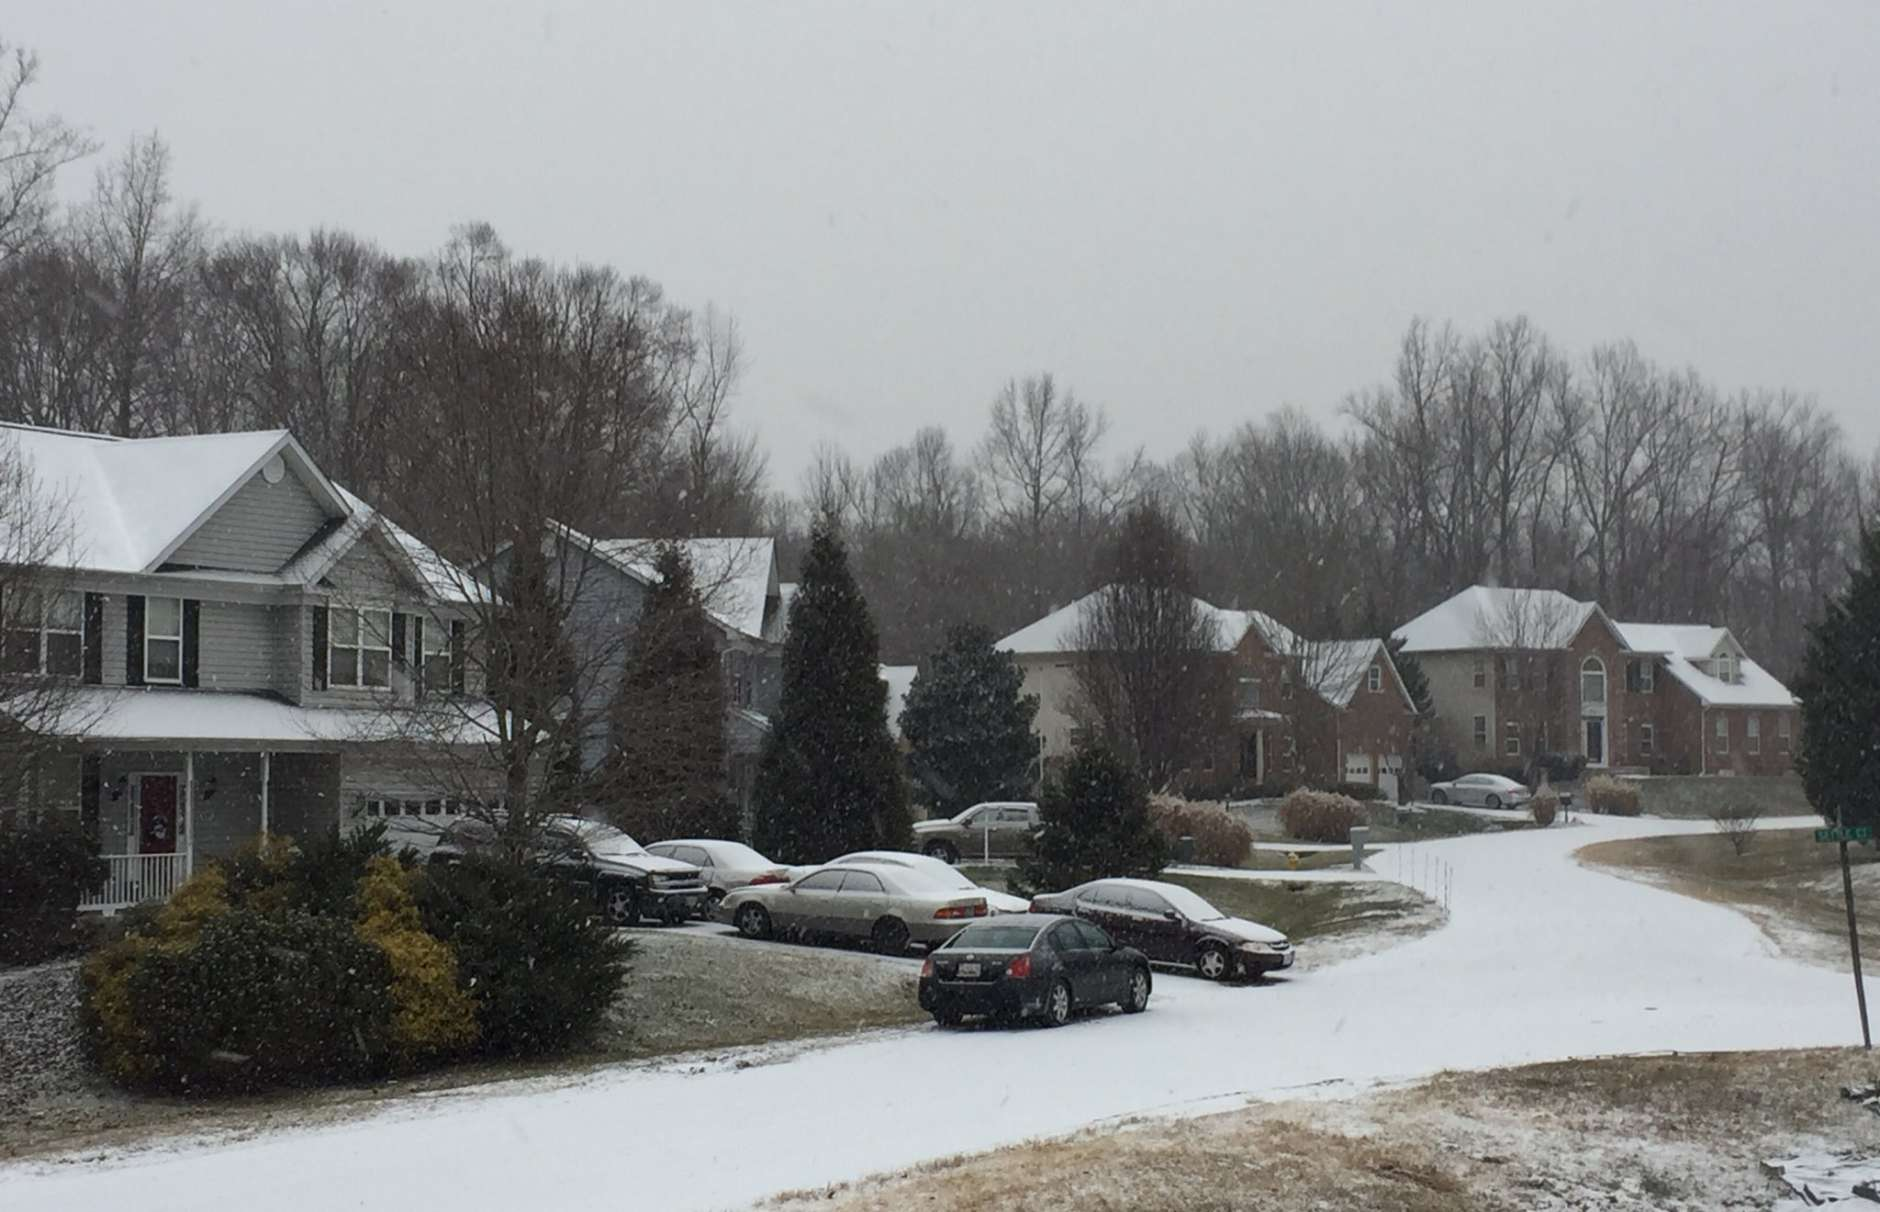 Light snow began to fall Saturday morning in Waldorf, Md. (WTOP/Darci Marchese)